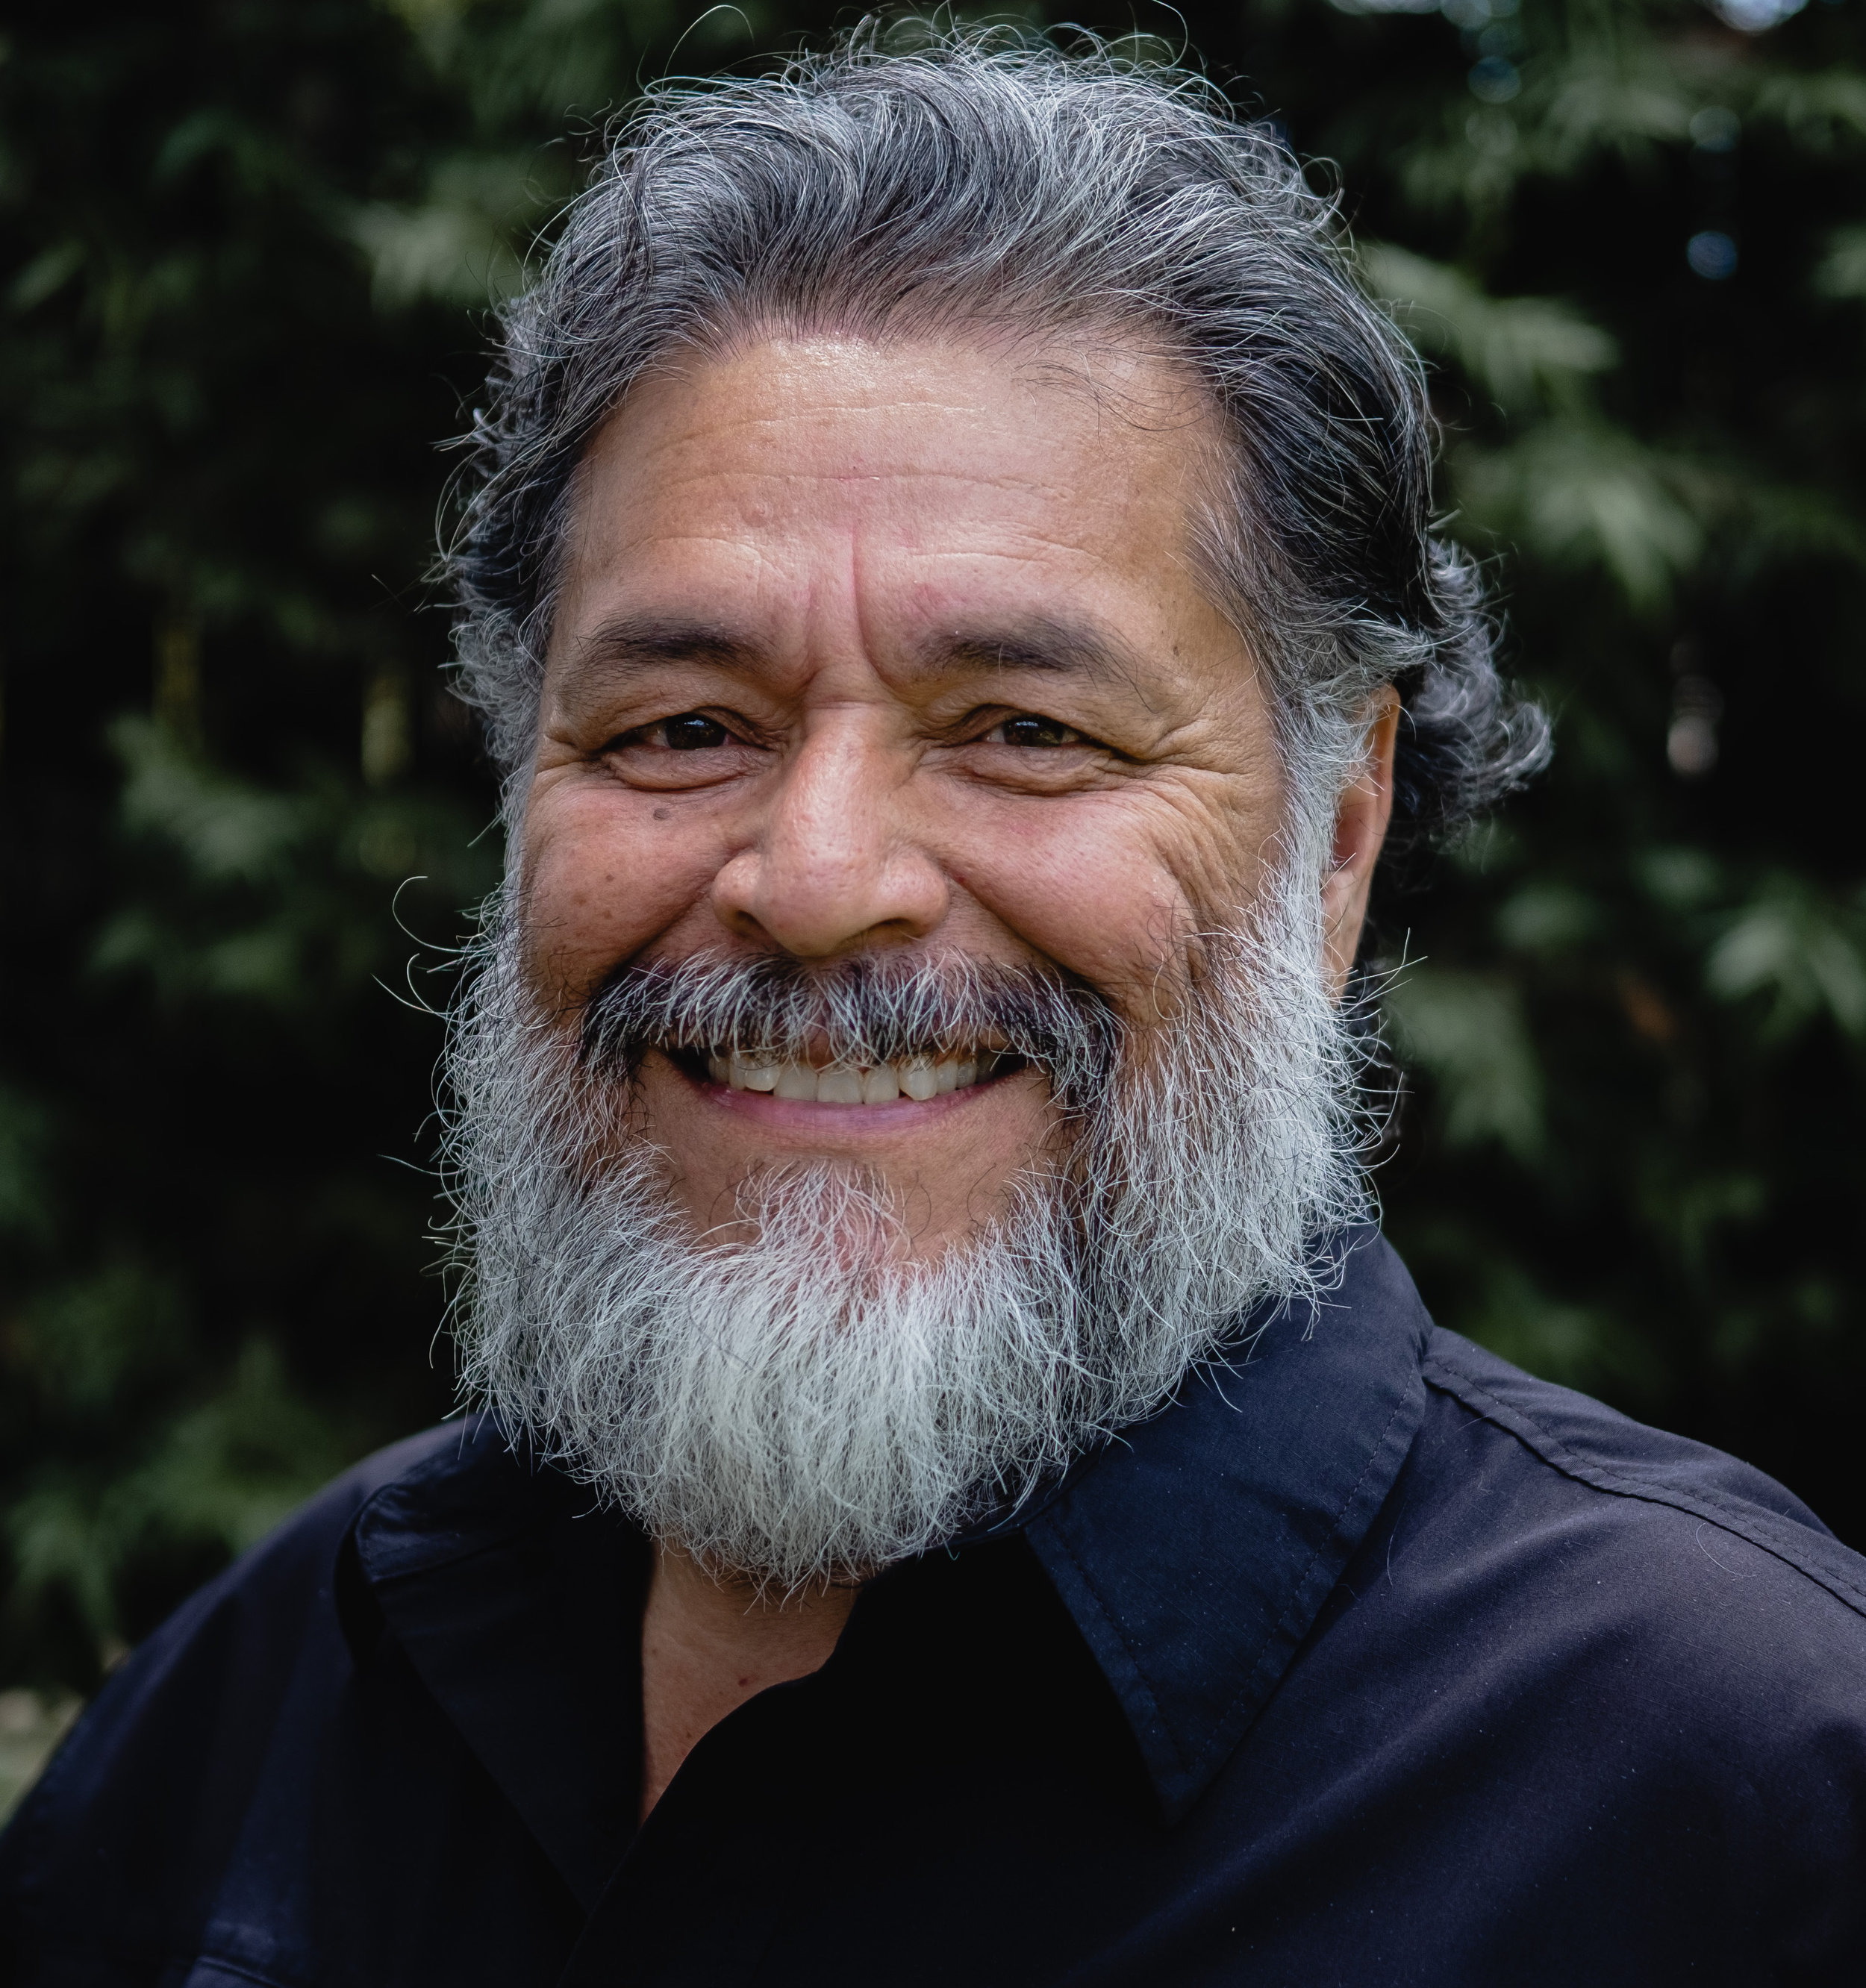 Larry Santoyo - Founder of the Permaculture Academy and lead instructor. He has been a teacher and practitioner of Permaculture Design for the 28+ years and spent over a decade studying and teaching with Bill Mollison. He has taught environmental design at colleges and universities nationwide, including UC Berkeley, UC Santa Cruz, Evergreen College, CSU Northridge, and Cal Poly San Luis Obispo.